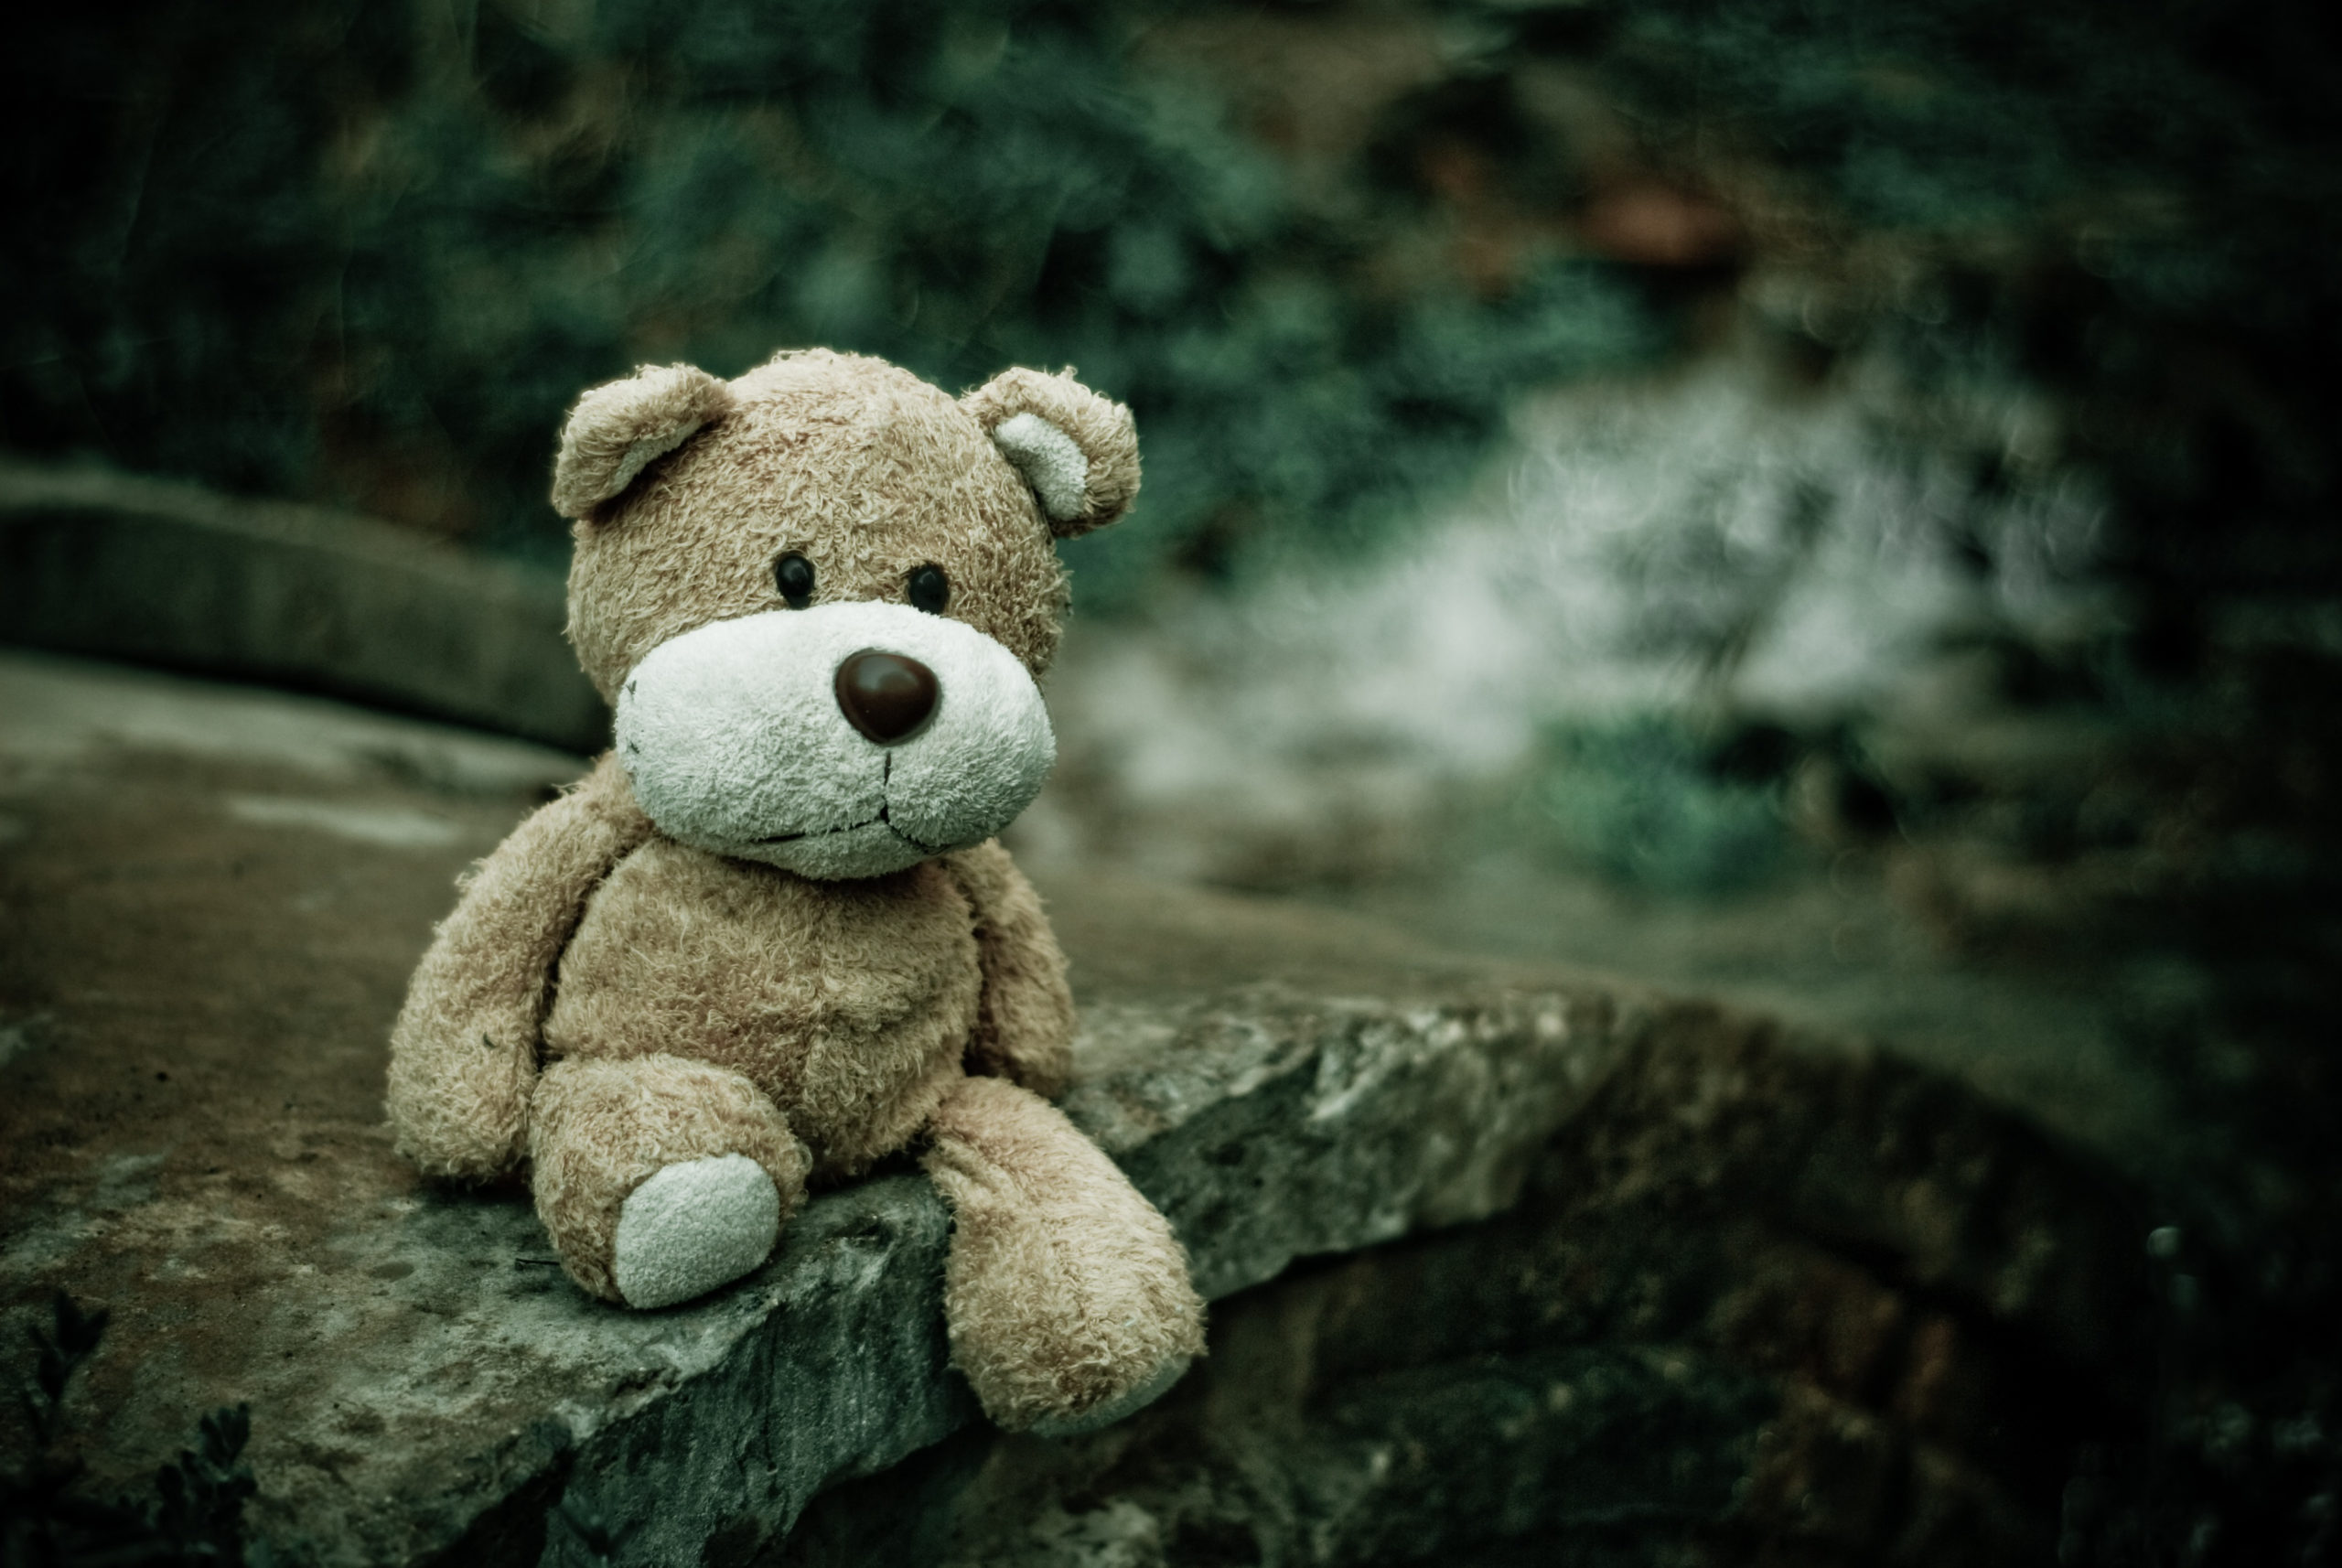 Teddy Bear sitting on a log